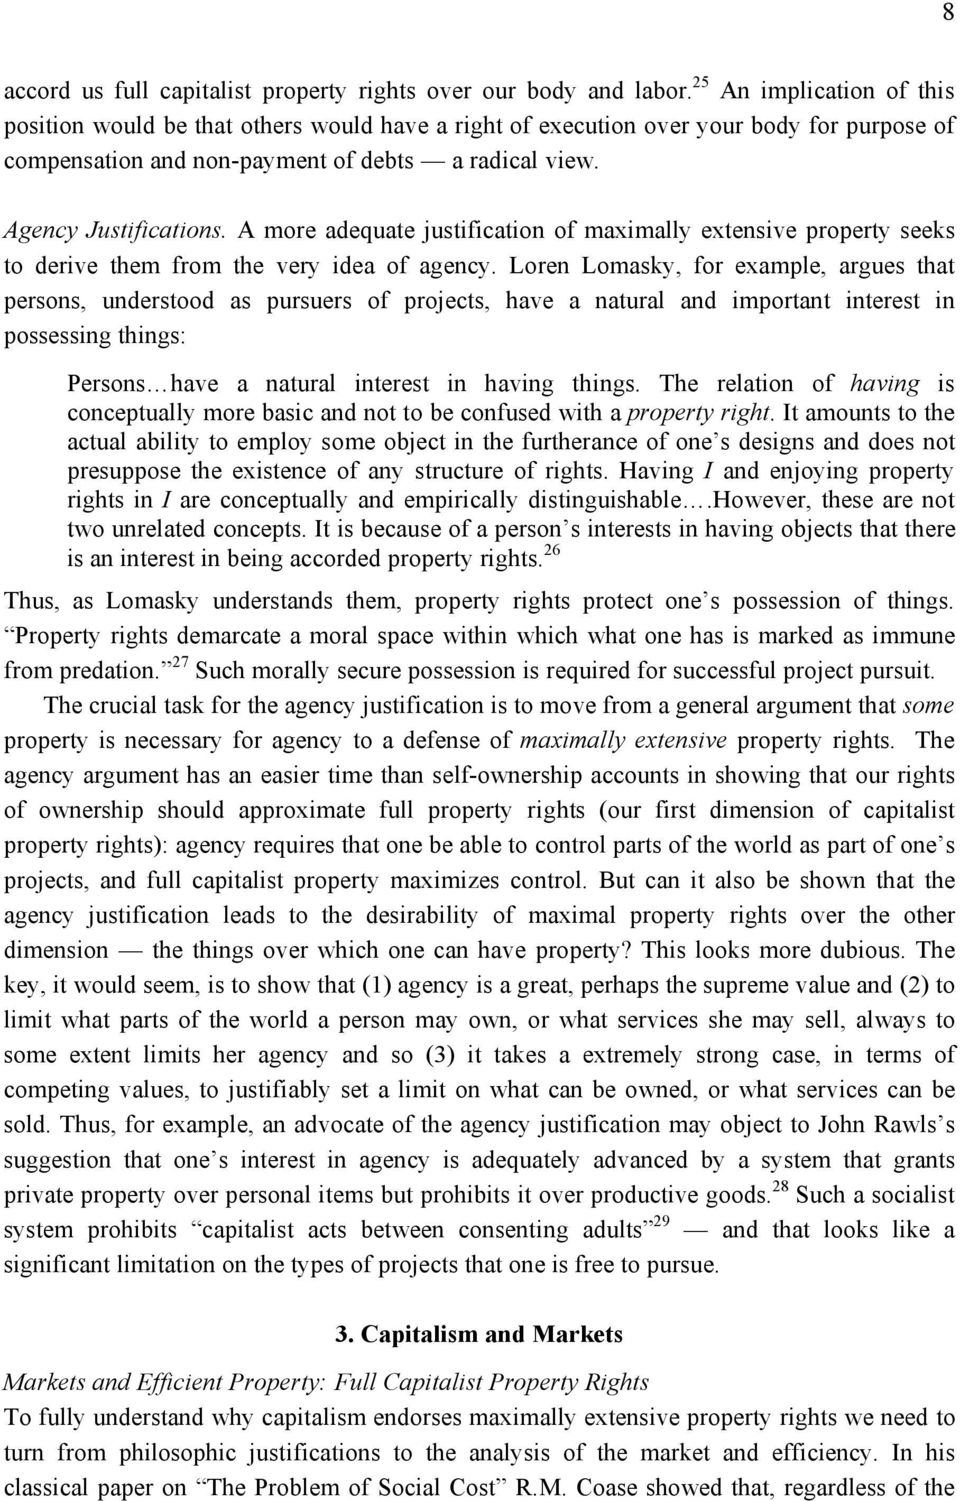 A more adequate justification of maximally extensive property seeks to derive them from the very idea of agency.